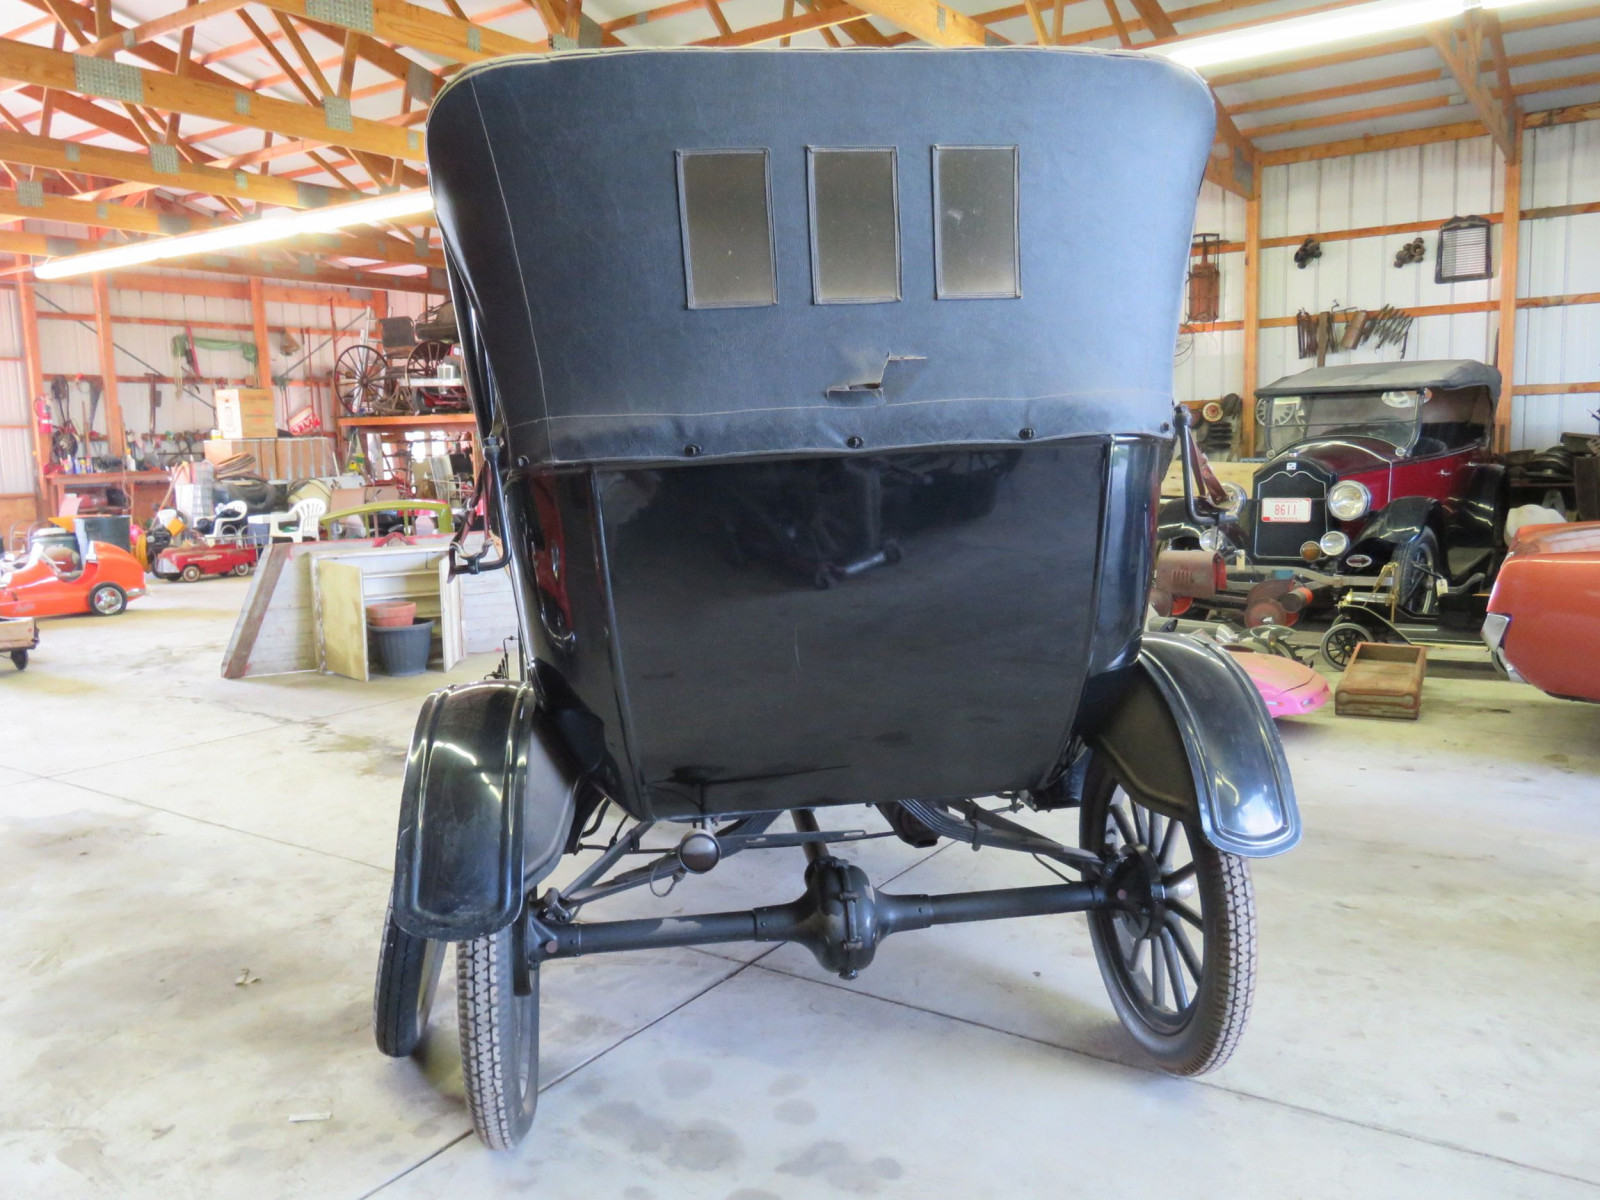 1918 Ford Model T Touring Car - Image 6